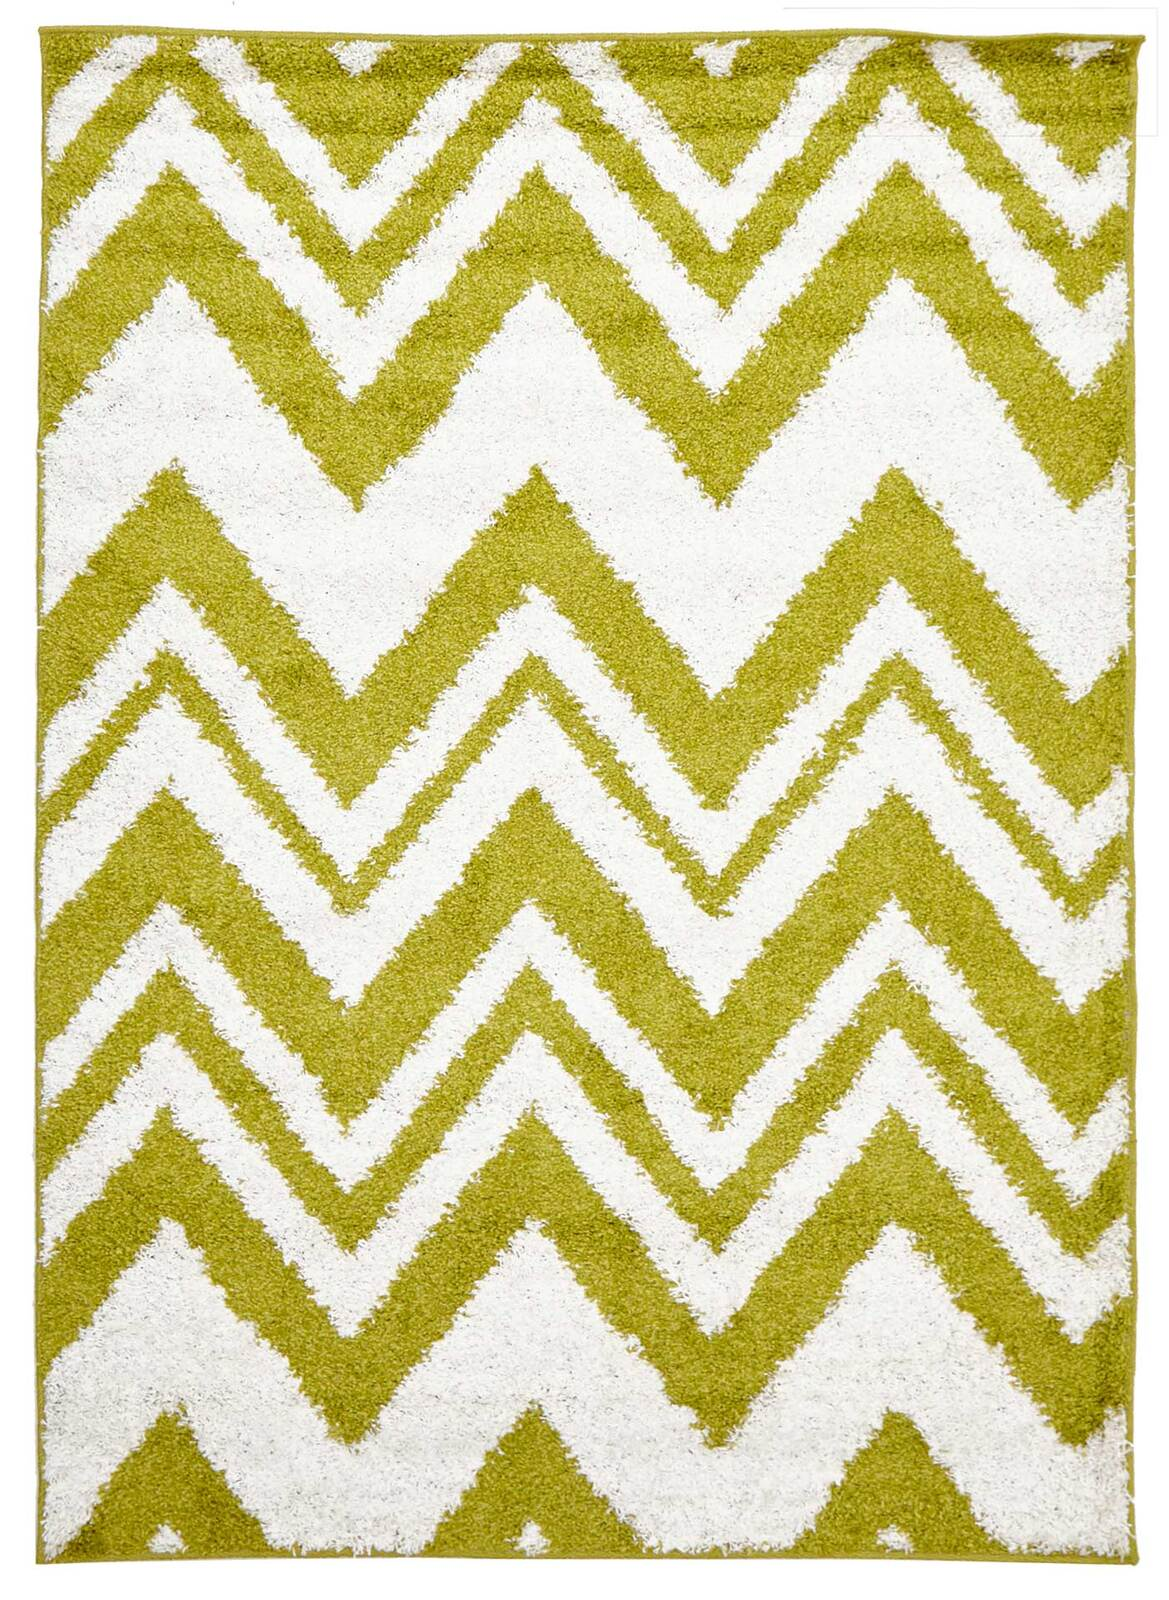 Rug Culture Chevy Shag Flooring Rugs Area Carpet Lime 330x240cm